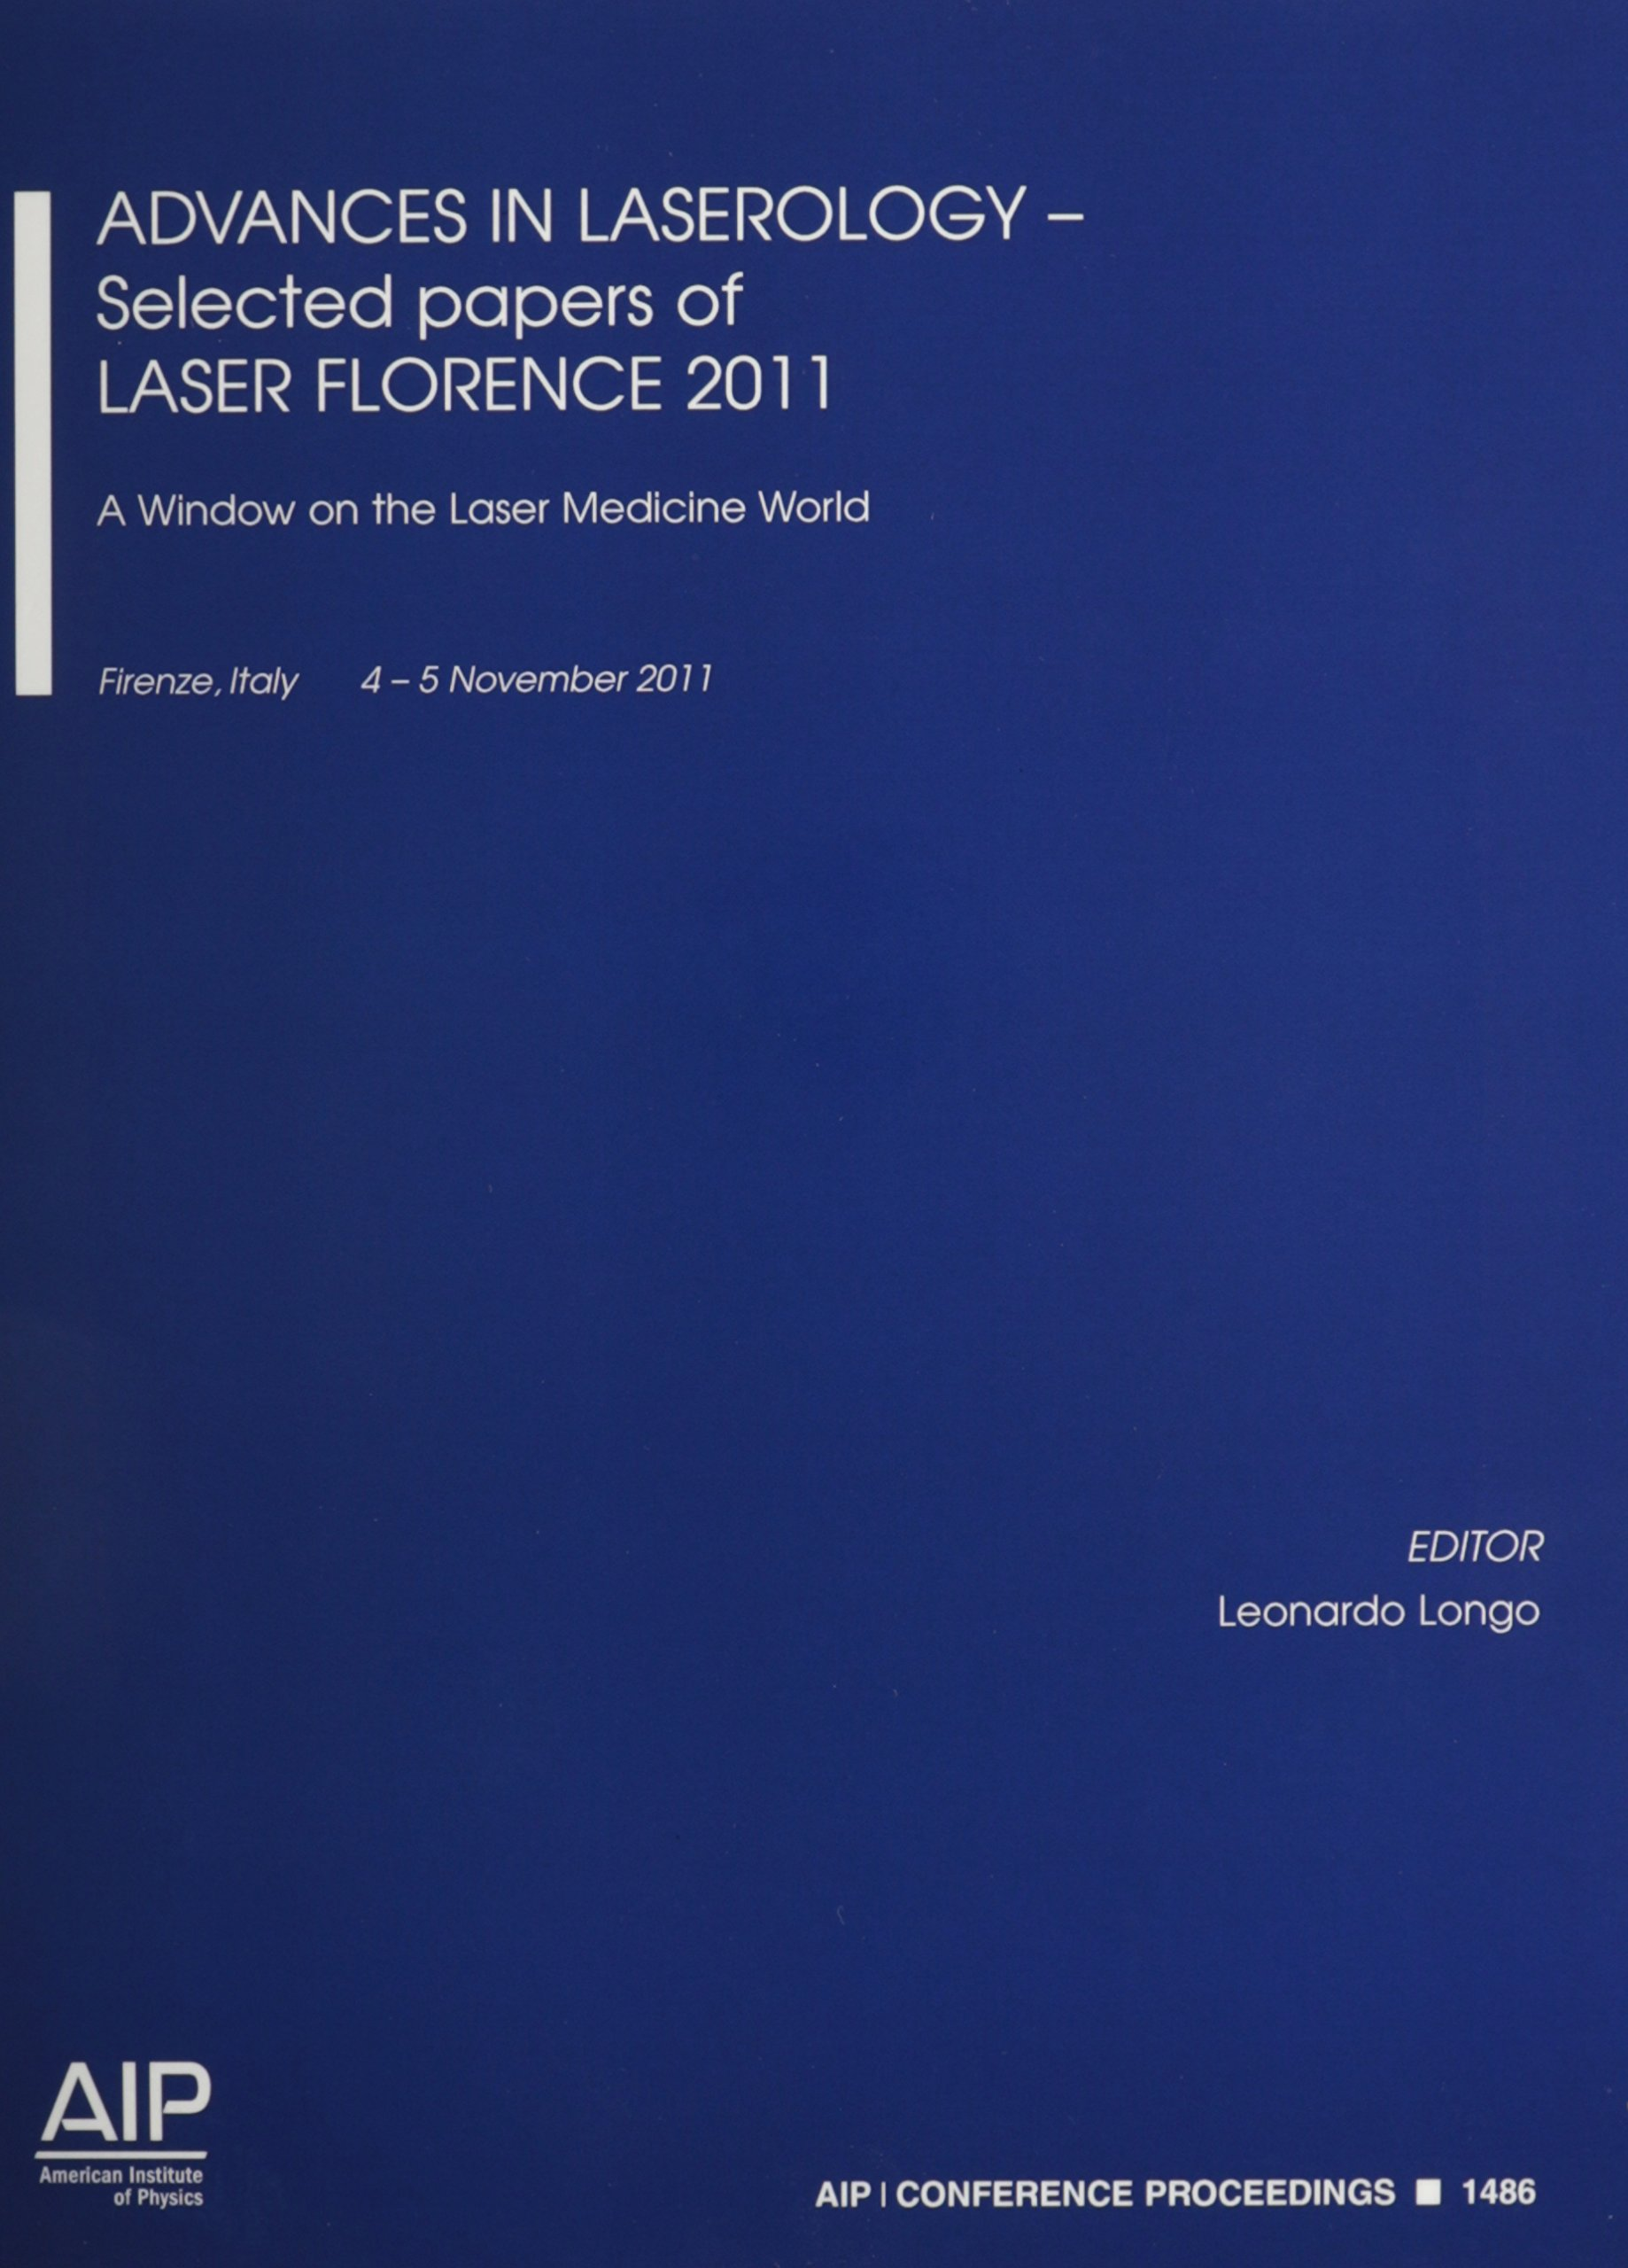 Advances in Laserology - Selected Papers of Laser Florence 2011:: A Window on the Laser Medicine World (AIP Conference Proceedings) by American Institute of Physics